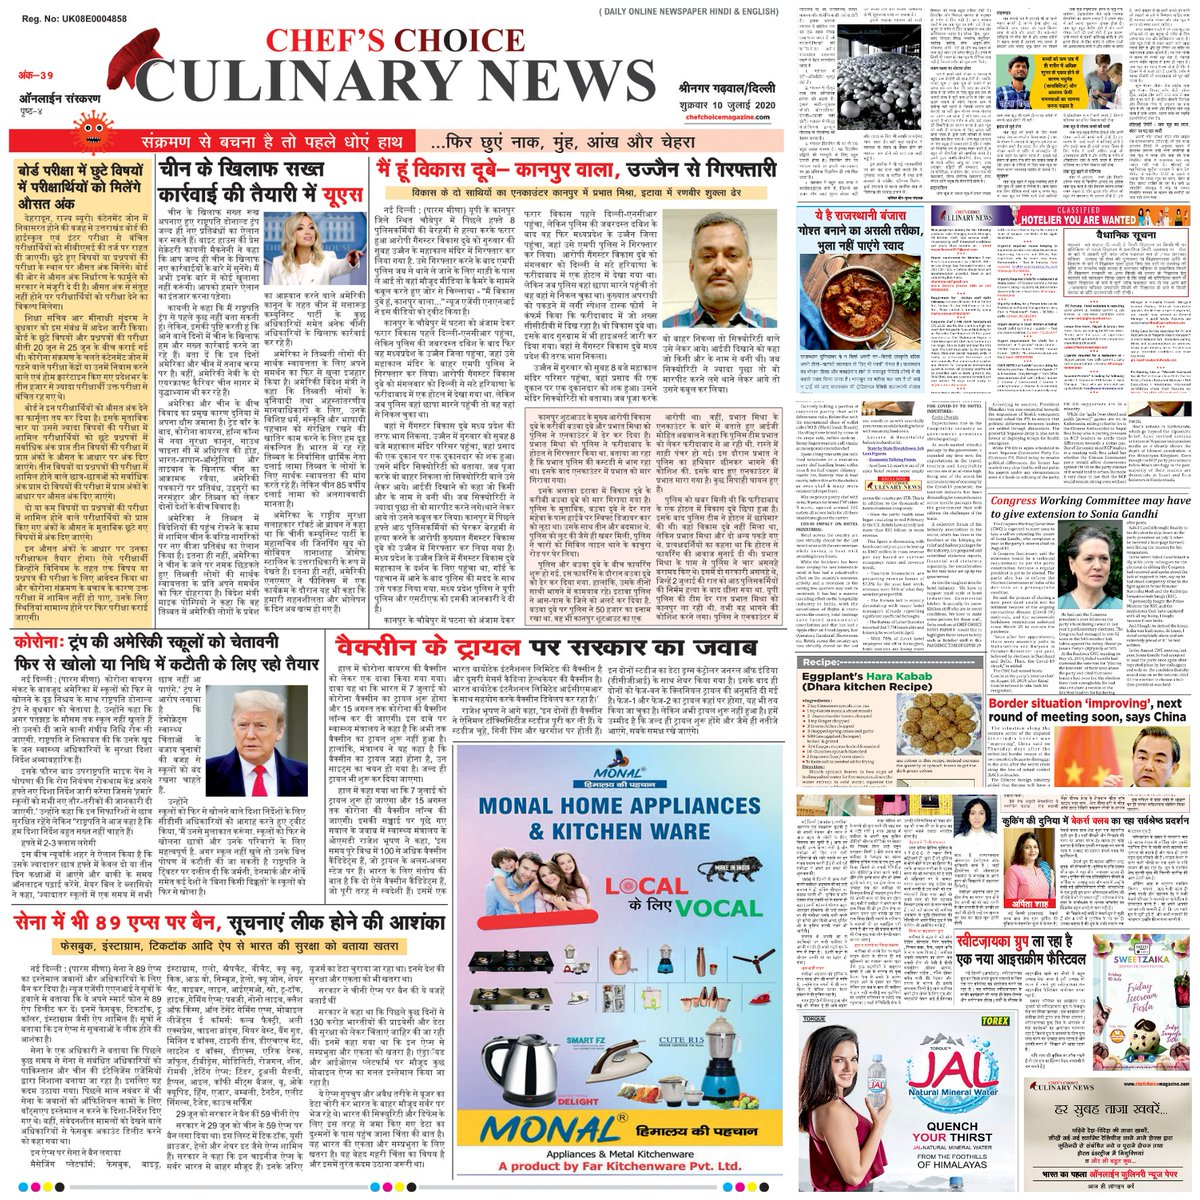 CHEF CHOICE DAILY CULINARY NEWS E-NEWSPAPER ONLINE ALL PAGES 10/07/2020 #chef #chefs #chefschoicemagazine #wccf #homechef #homechefs #kitchen #restaurants  #EXECUTIVECHEF #masterchef #hotels #chefchoice #selfiechef #foodlover #food #worldchefchoicefederation #Uttarakhand #food https://t.co/FSTk4MzxiG